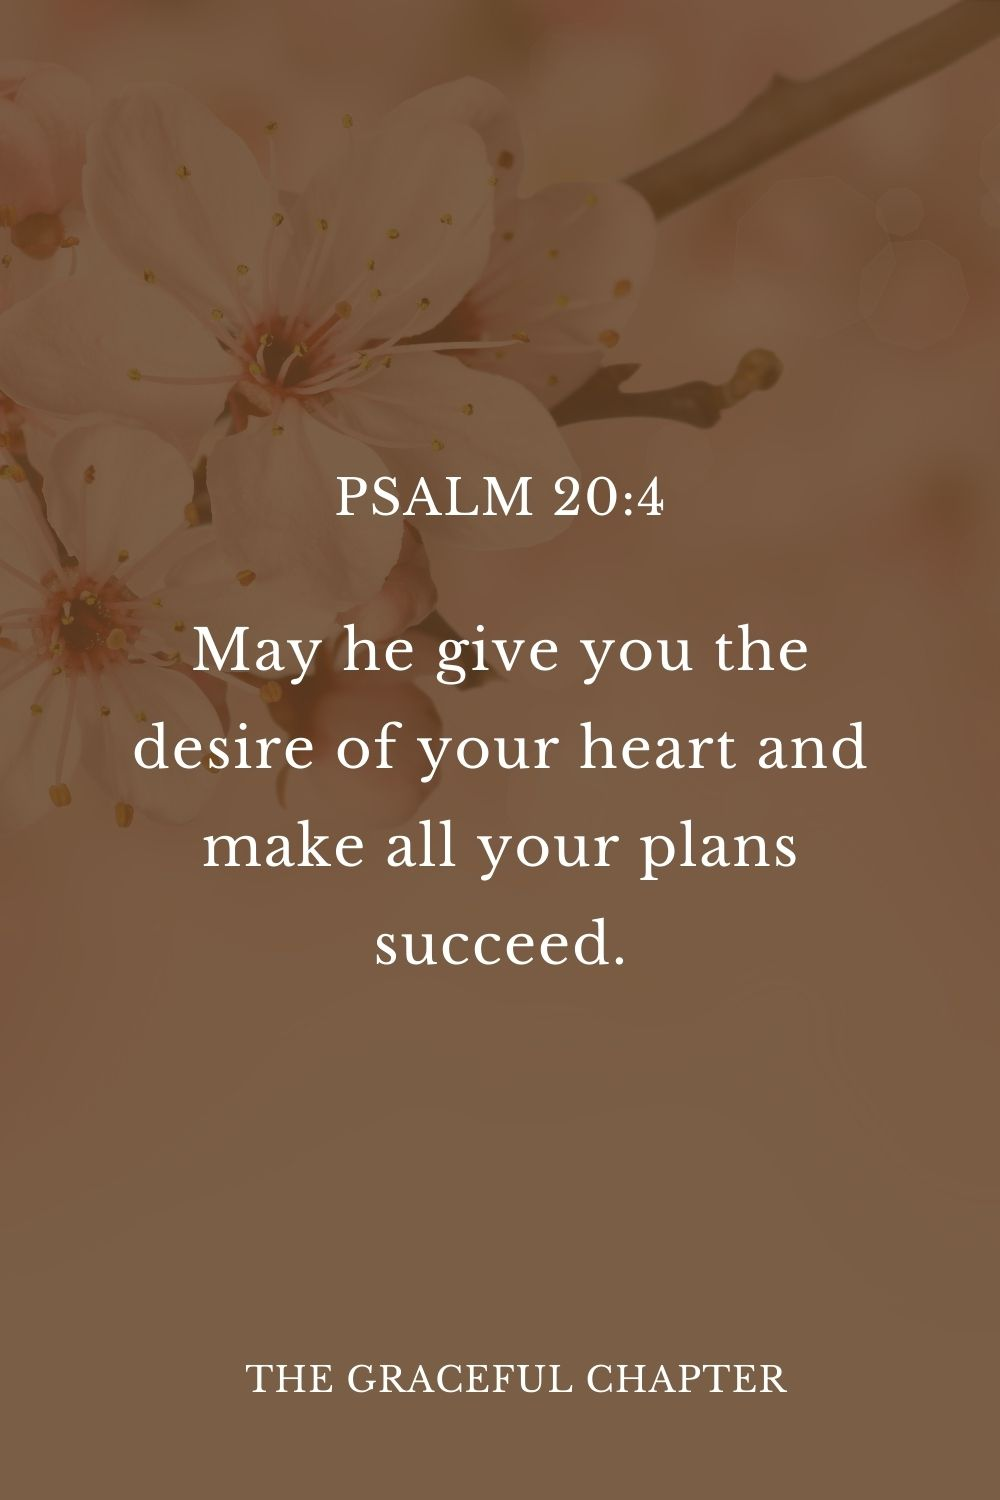 May he give you the desire of your heart and make all your plans succeed.  Psalm 20:4